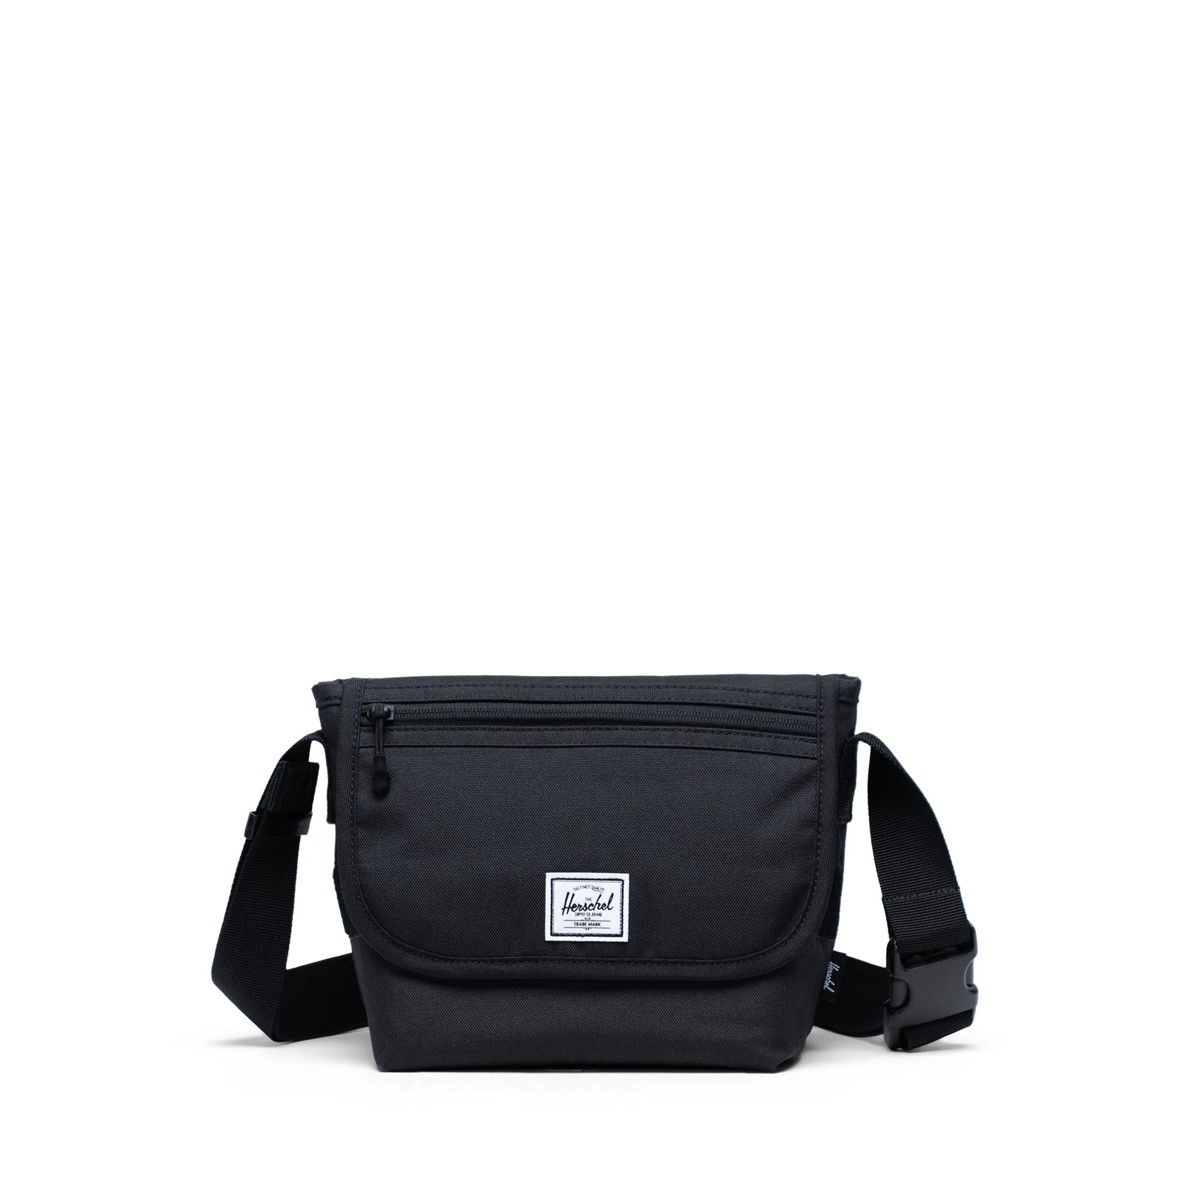 Grade Mini Crossbody Bag in Black